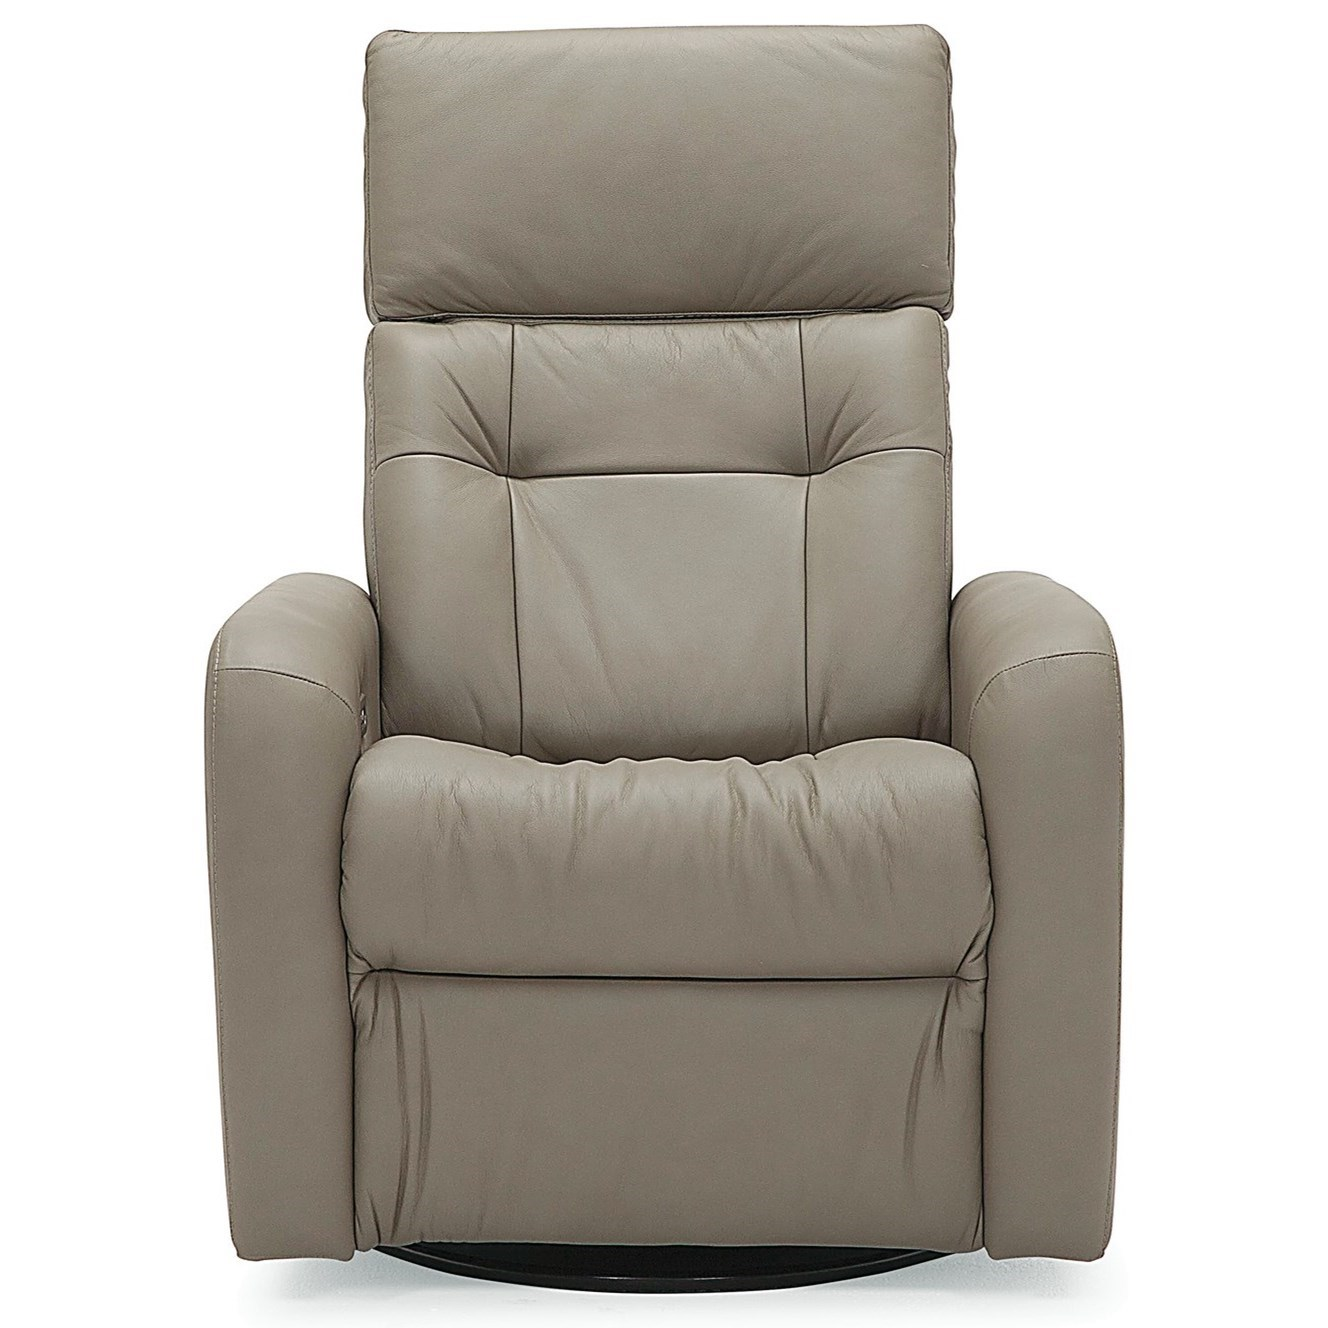 Sorrento II Swivel Glider Power Recliner by Palliser at Esprit Decor Home Furnishings